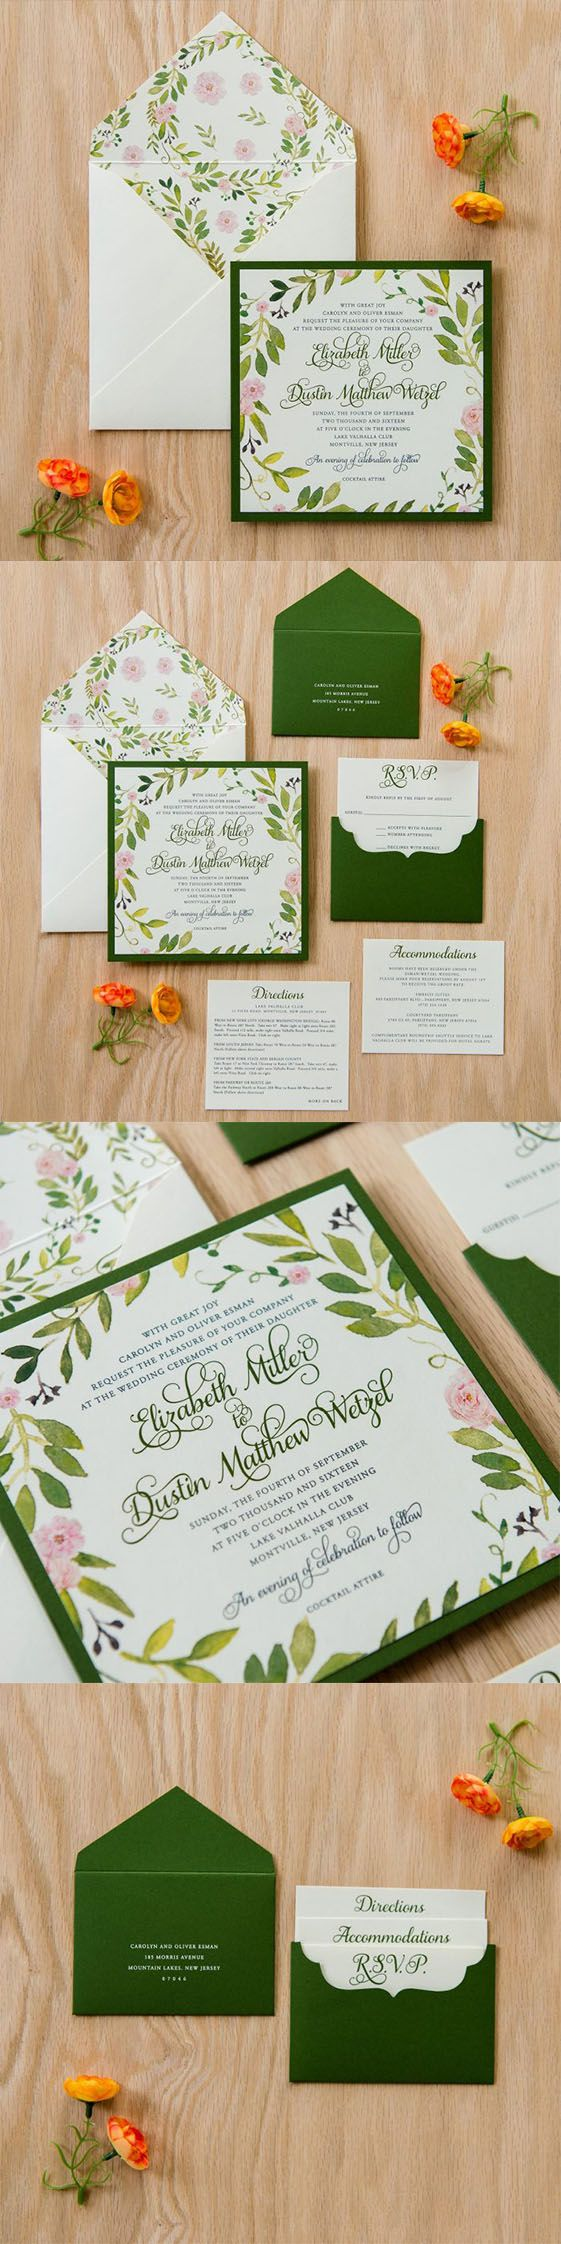 Rachel Wedding Invitation 3572 best Wedding Invitation